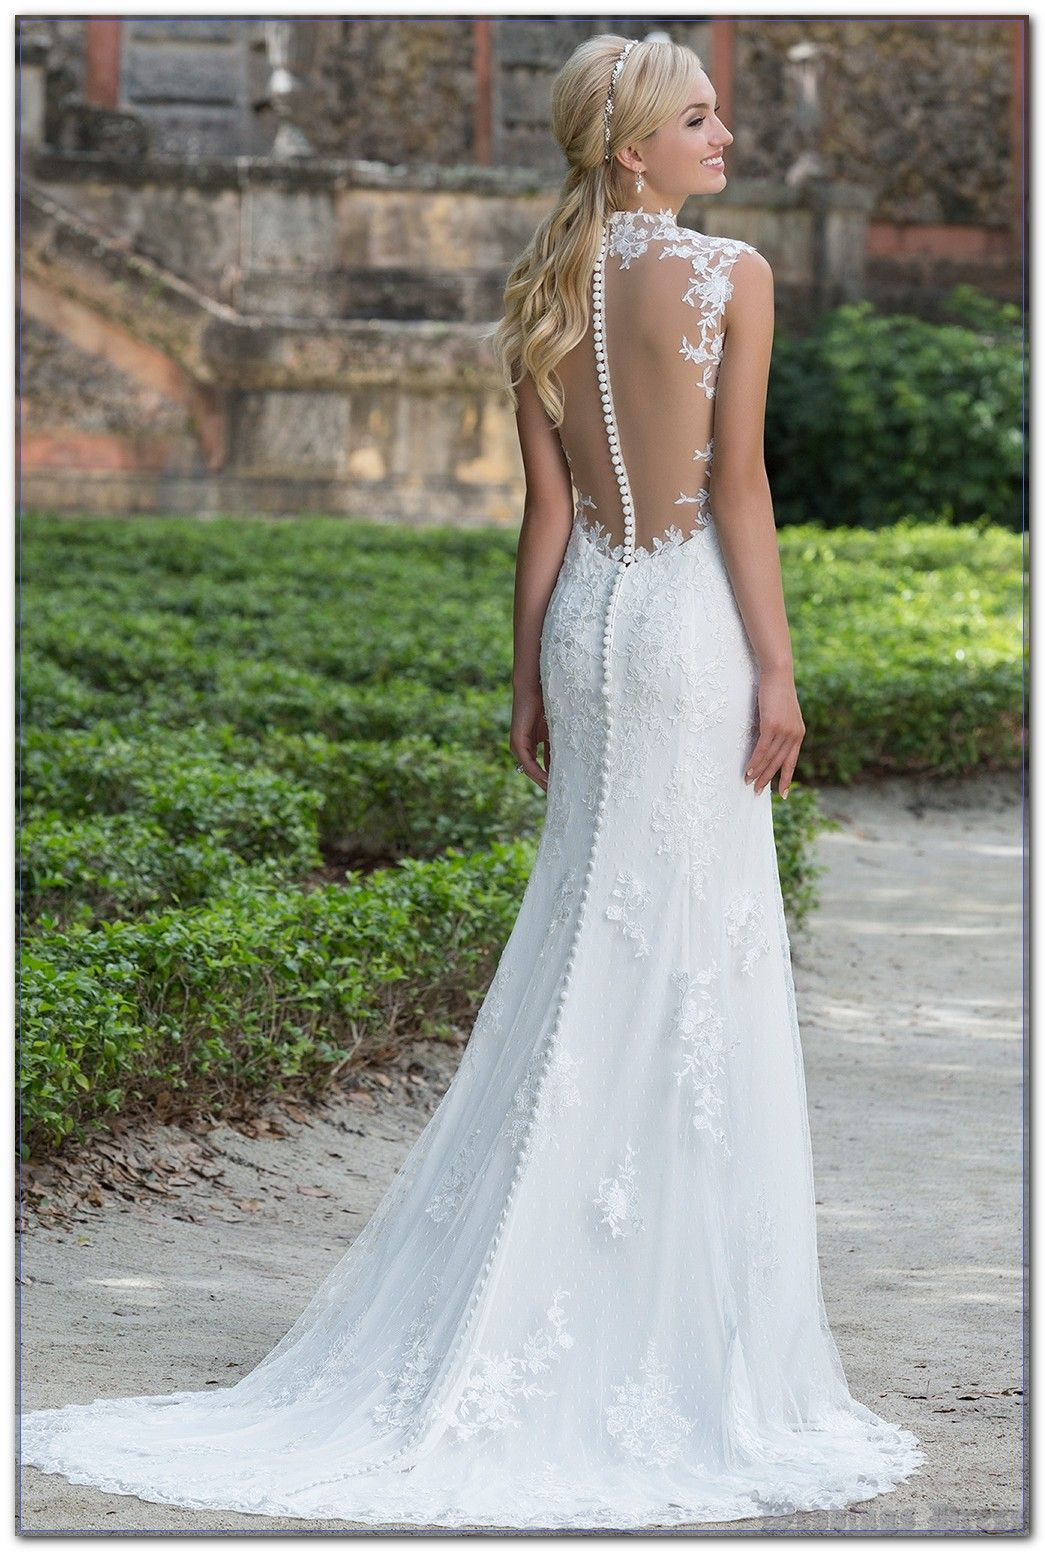 Where Can You Find Free Weddings Dress Resources